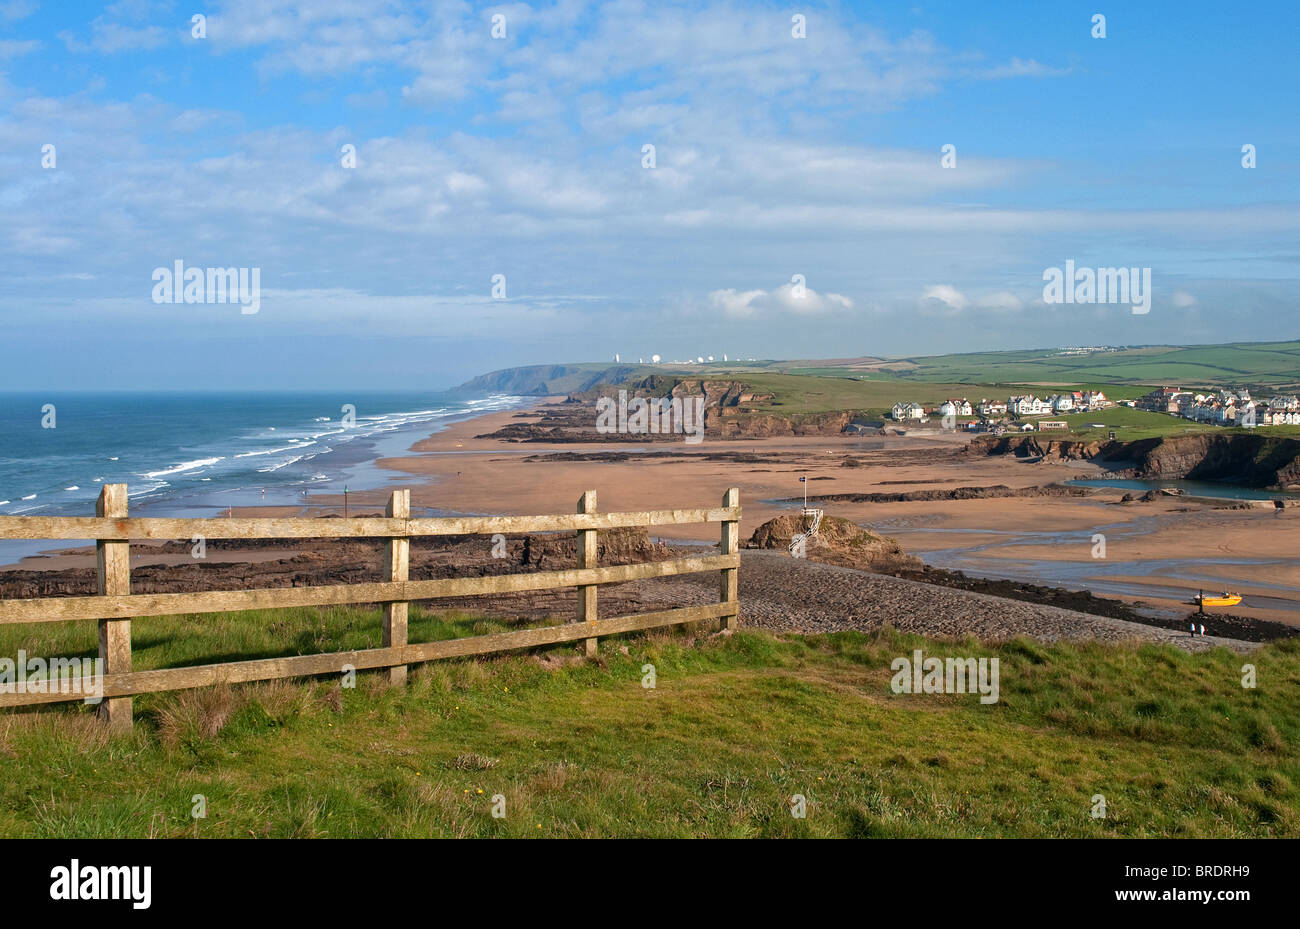 a view from compass point of the beaches at bude in cornwall, uk - Stock Image